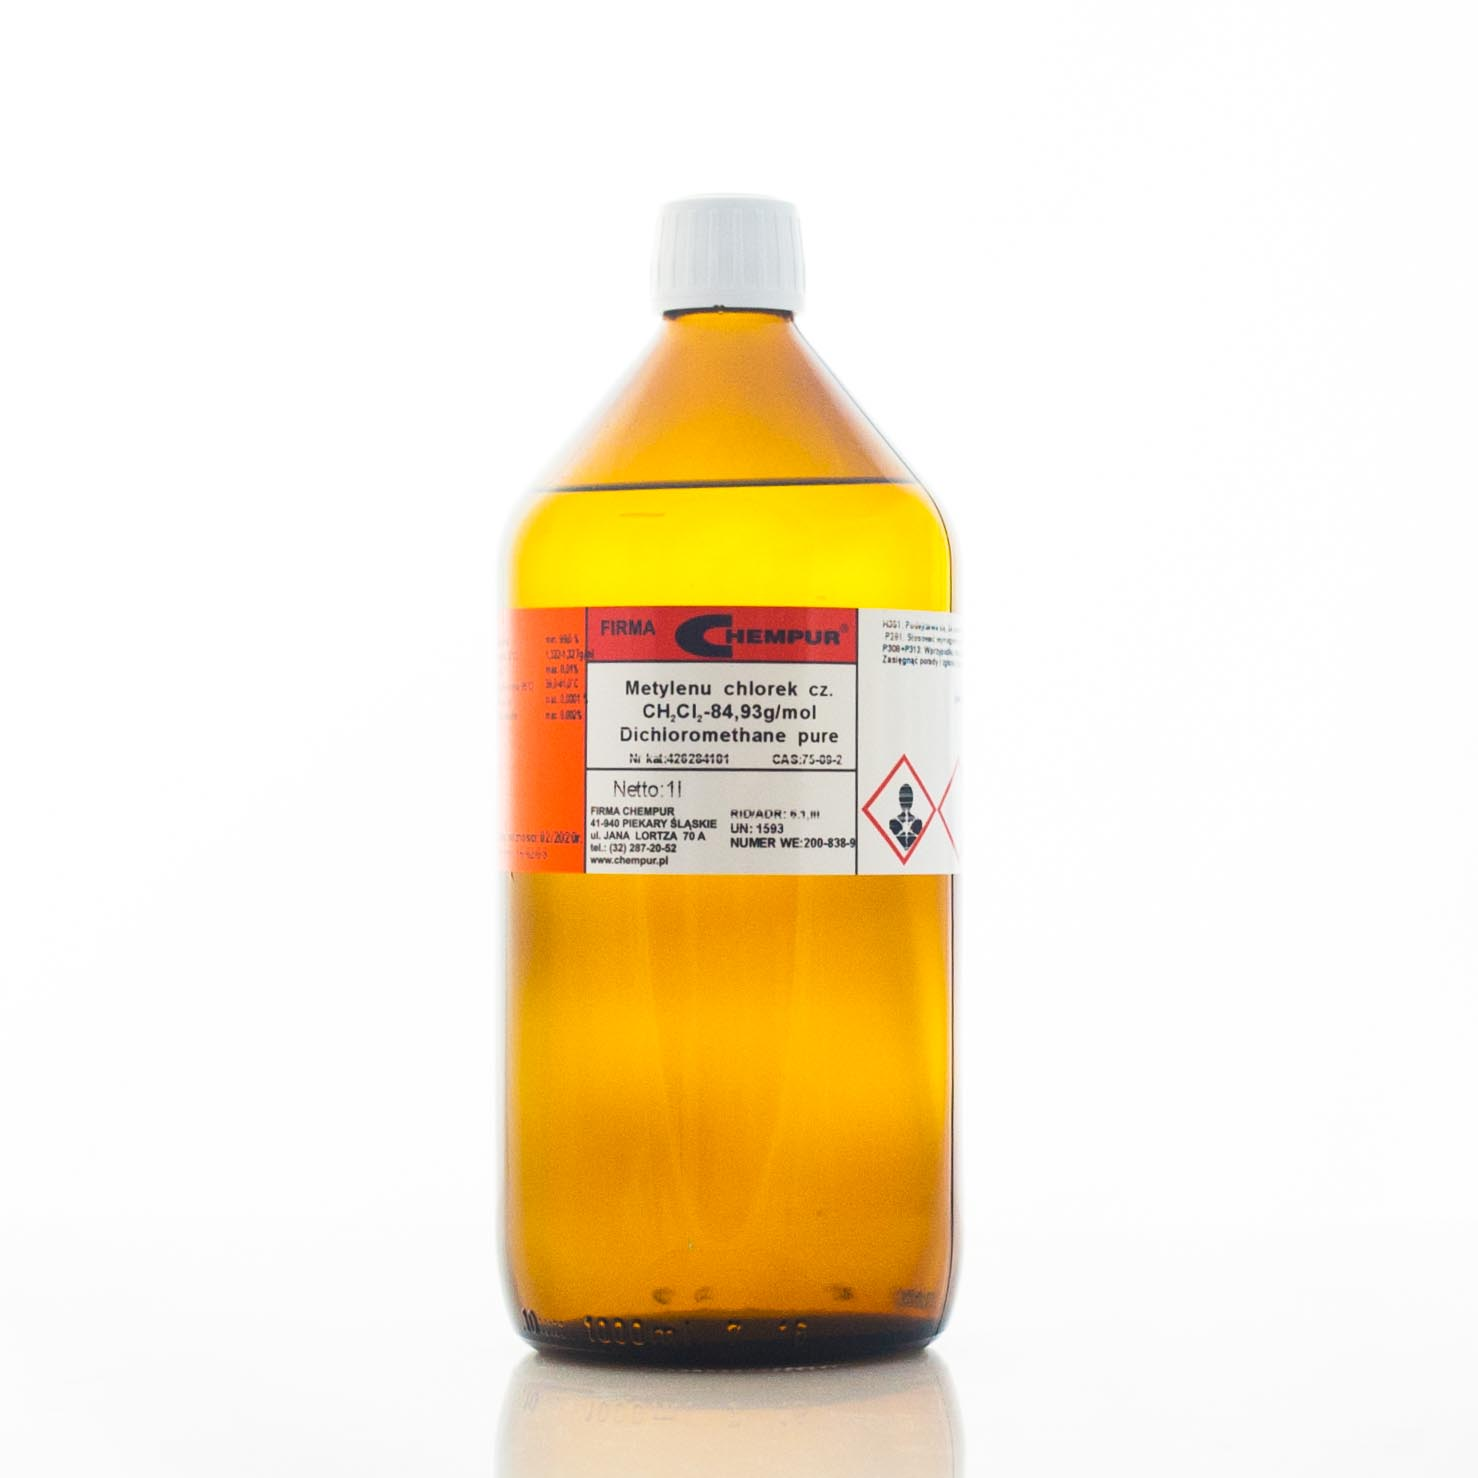 Dichloromethane pure